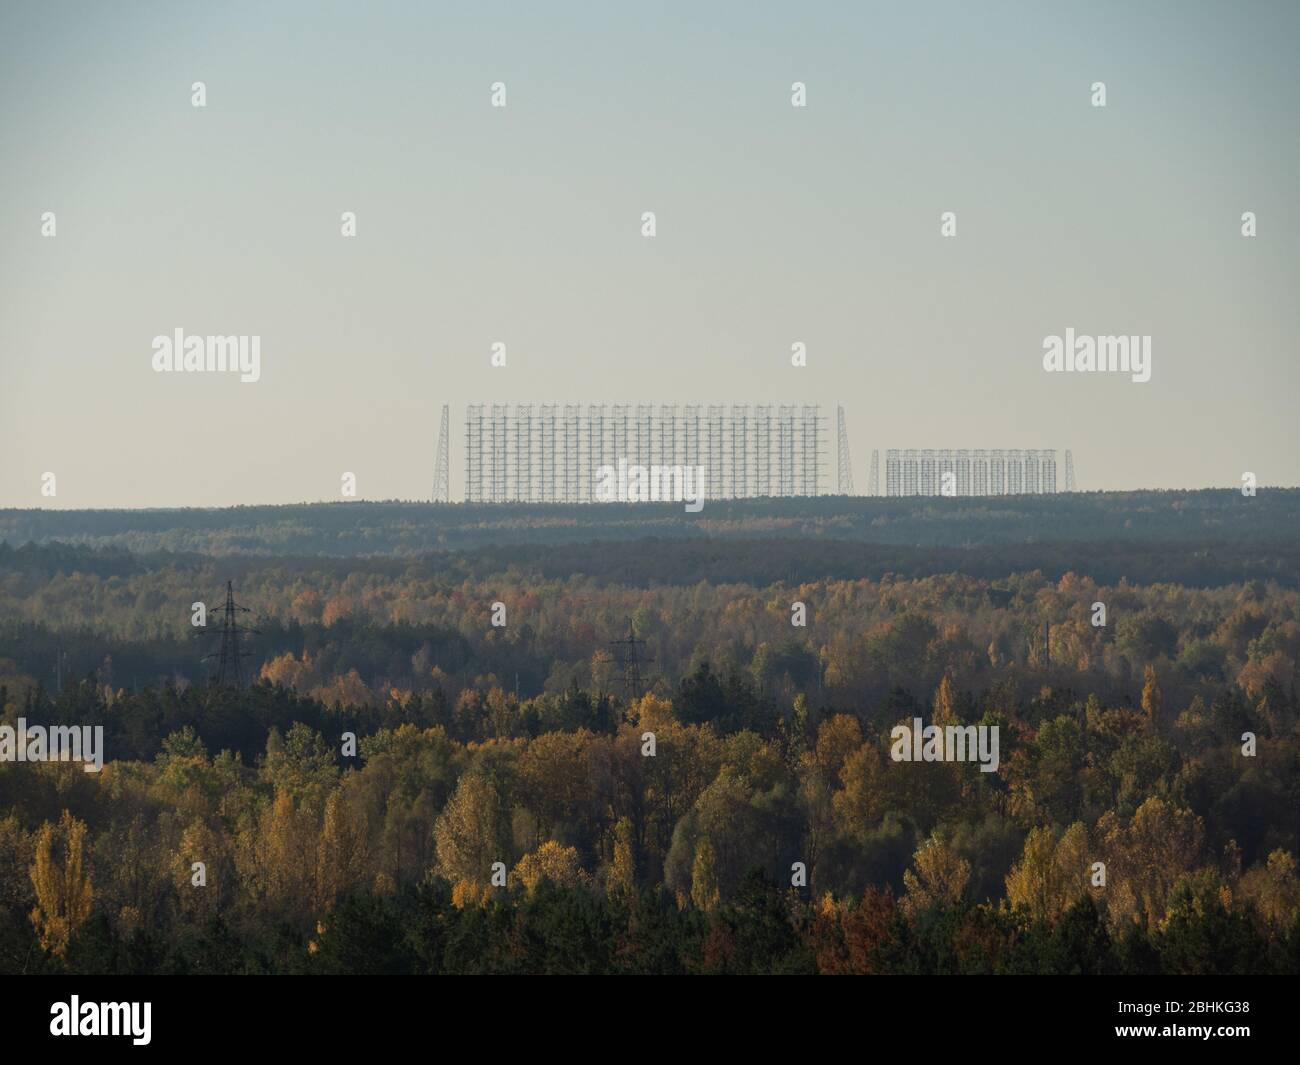 View from roof of ghost town Pripyat, post apocalyptic city and Moscow eye, autumn season in Chernobyl exclusion zone, Ukraine Stock Photo